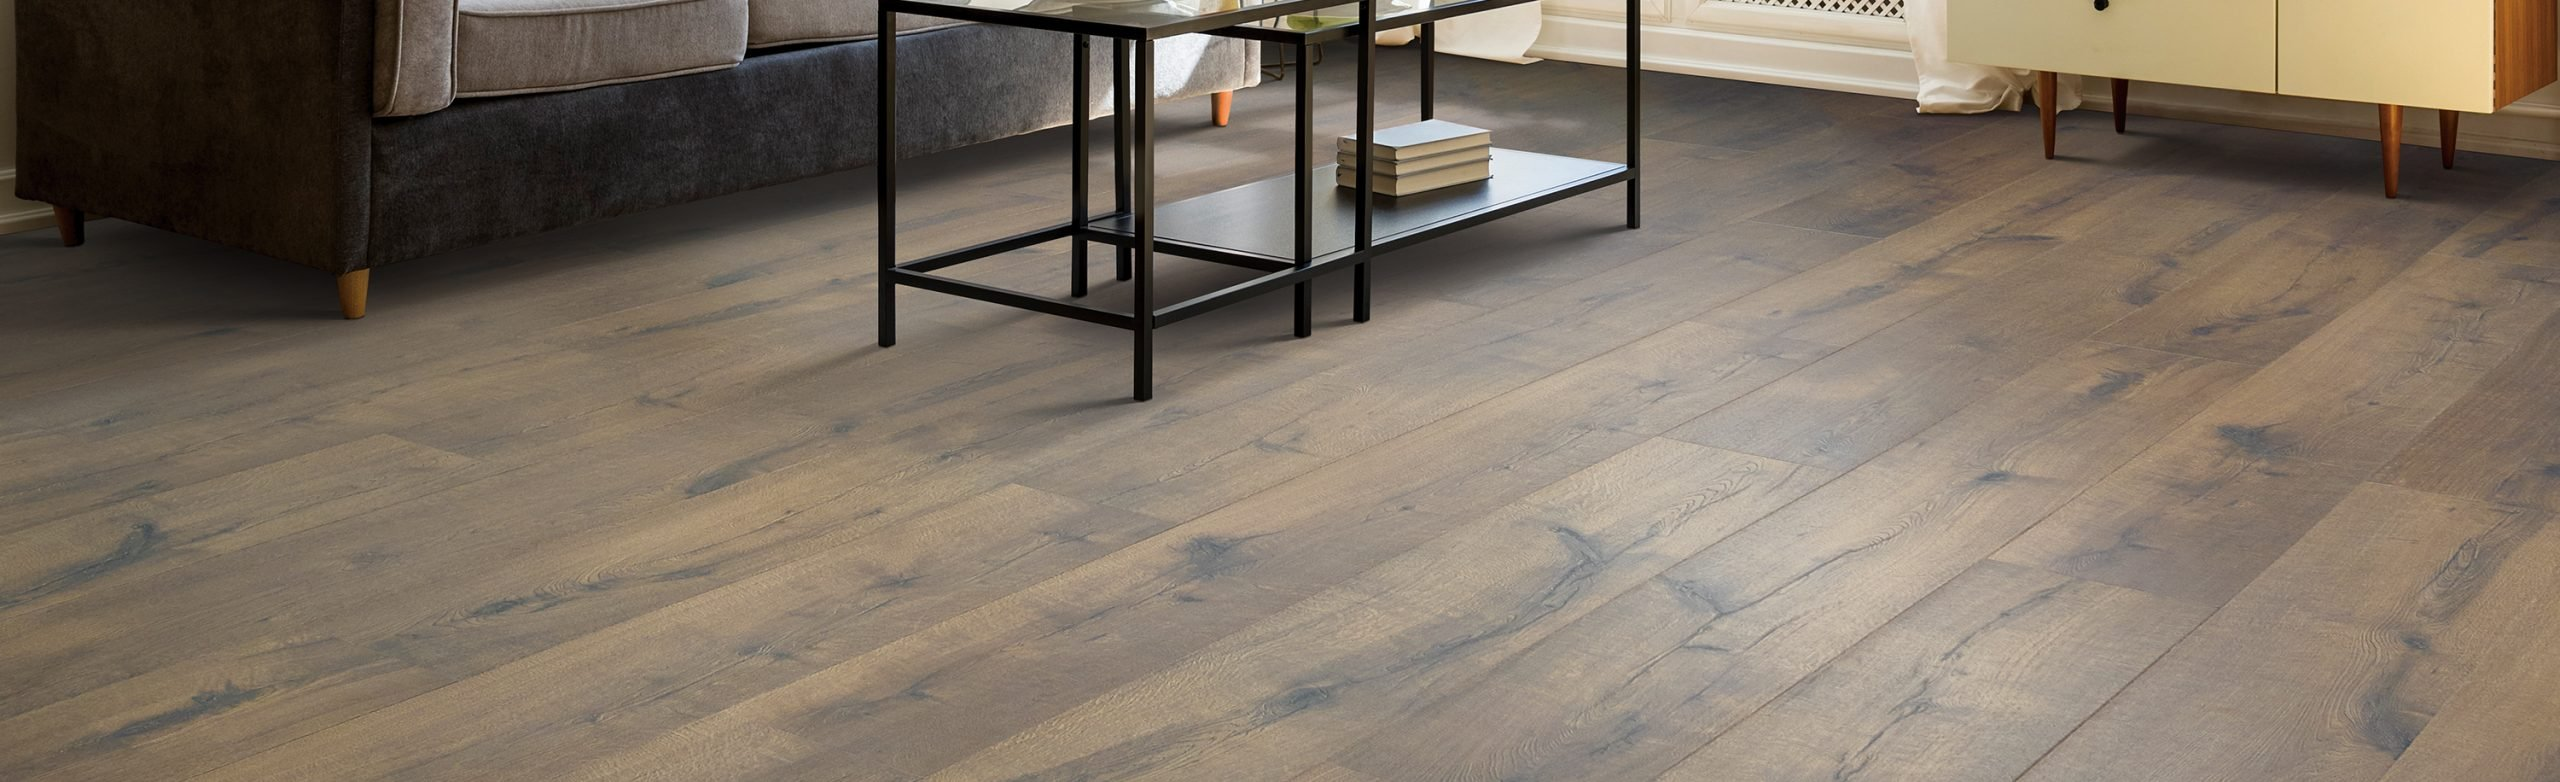 Laminate Flooring Best Buy Floors Redmond